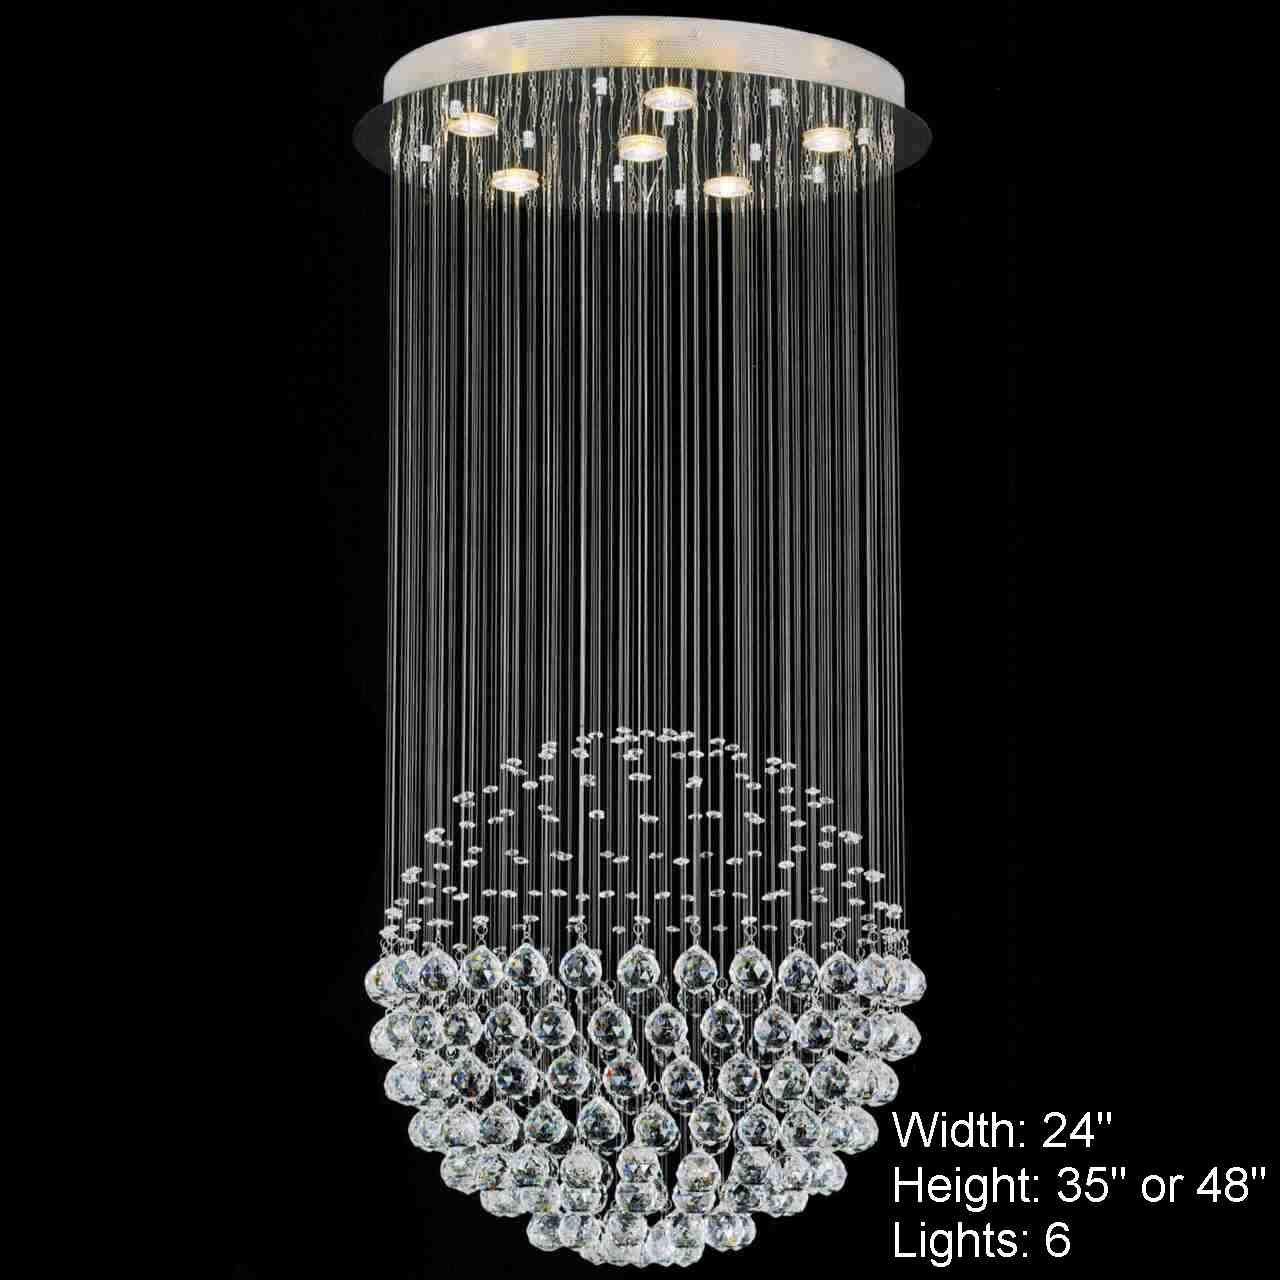 Brizzo lighting stores sphere modern crystal chandelier large picture of sphere modern crystal chandelier large mirror stainless steel base 6 lights aloadofball Image collections